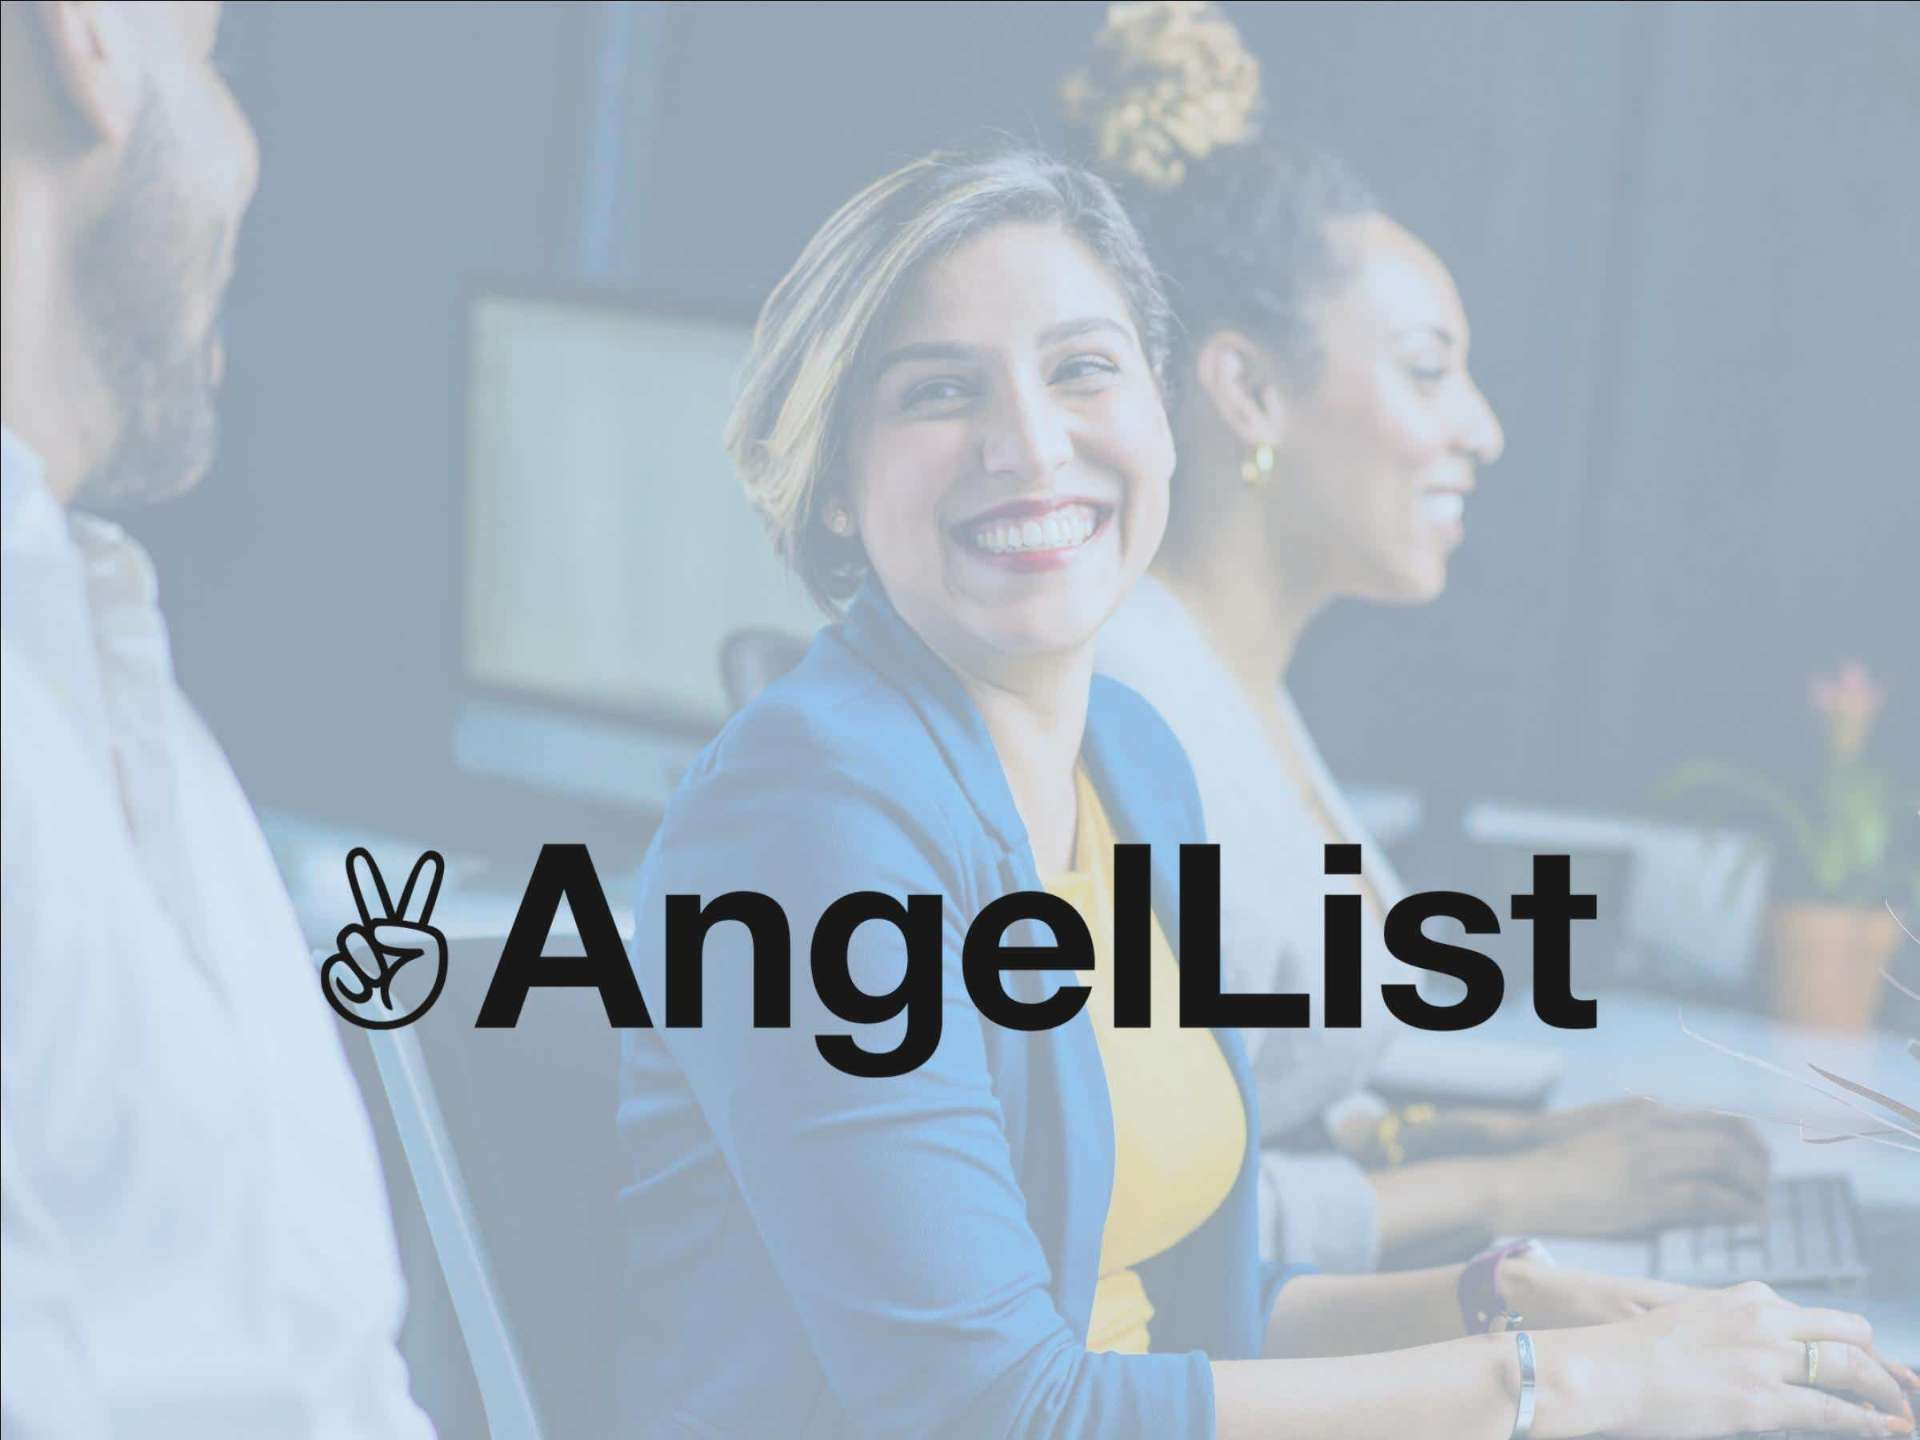 See How To Search For Jobs With AngelList